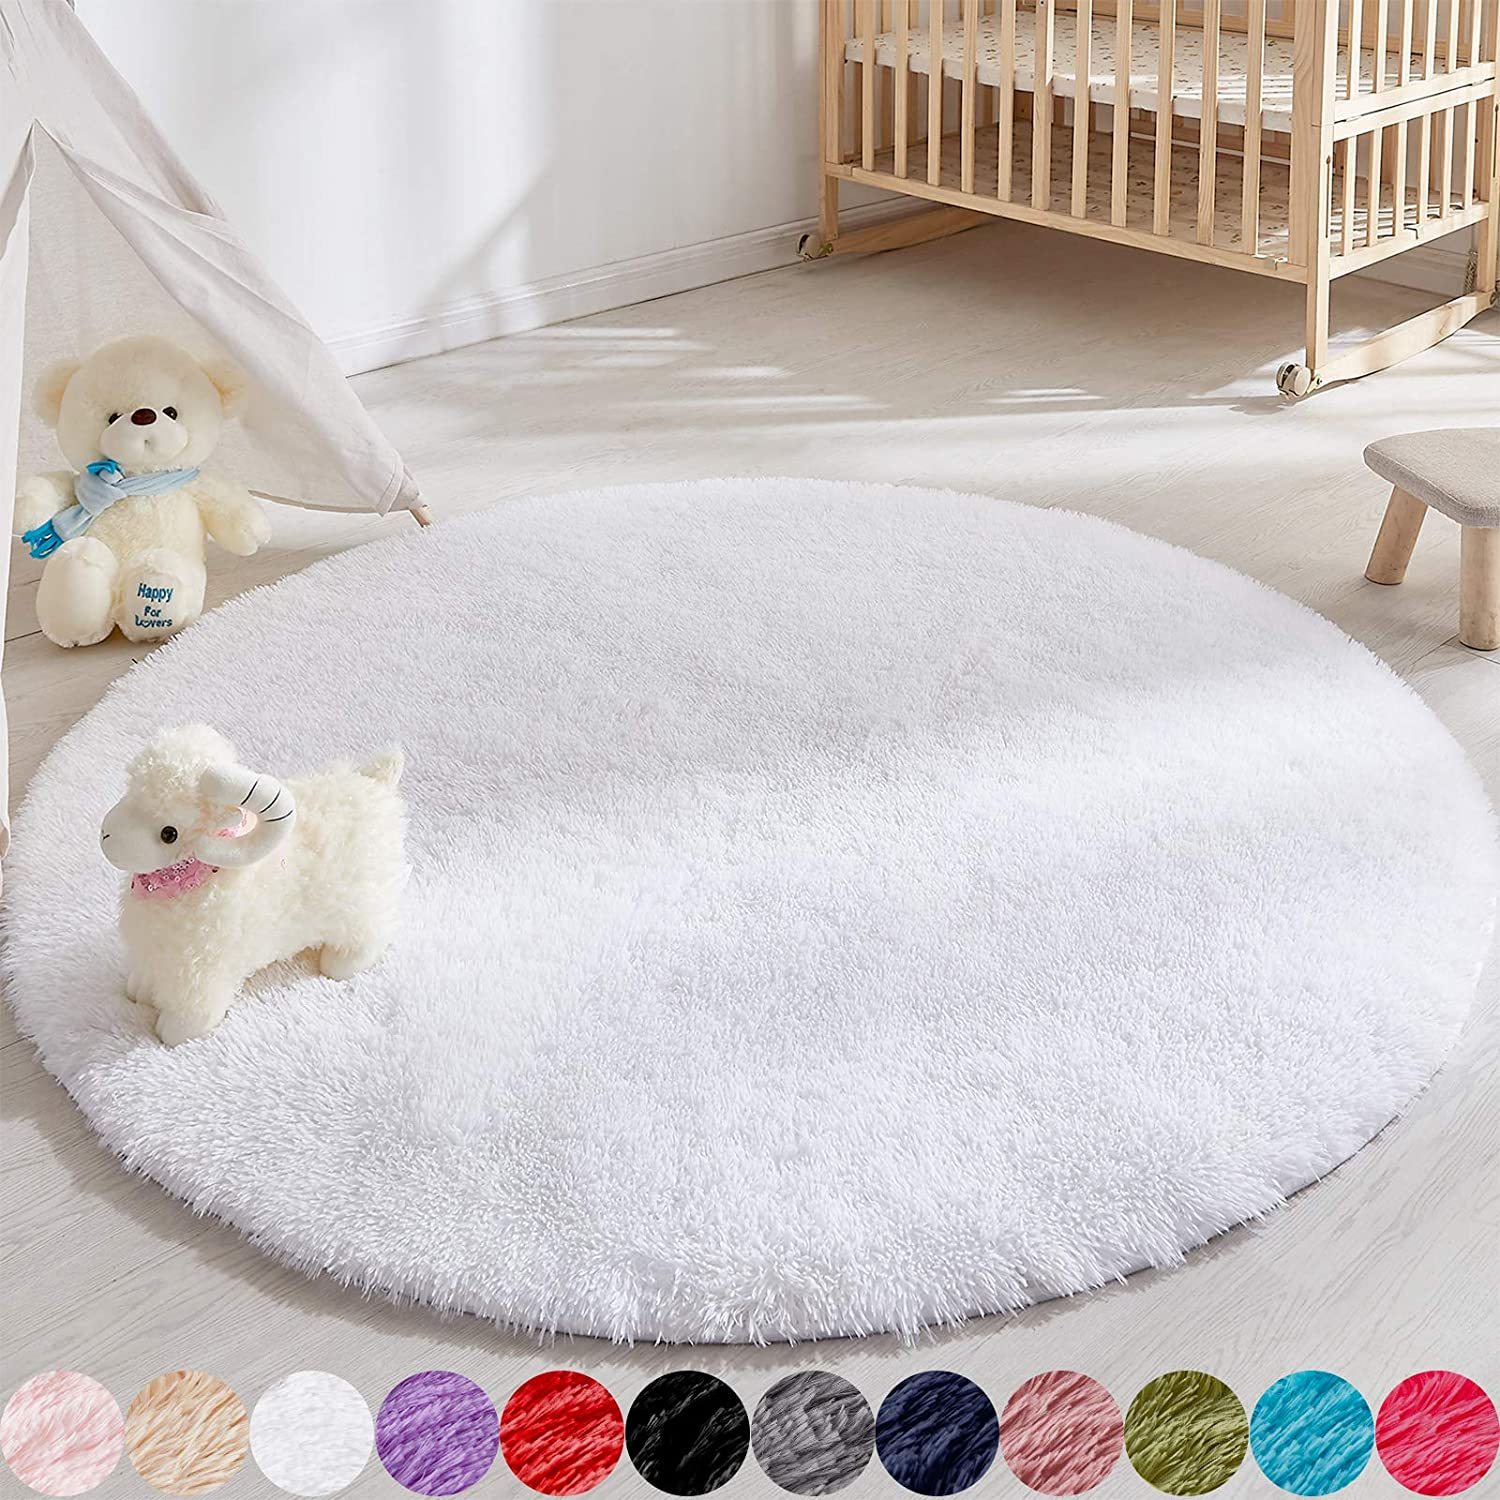 Soft Round Area Rug for Bedroom,4 Foot White Circle Rug for Nursery Room, Fluffy Carpet for Kids Room, Shaggy Floor Mat for Living Room, Furry Area Rug for Baby, Teen Room Decor for Girls Boys